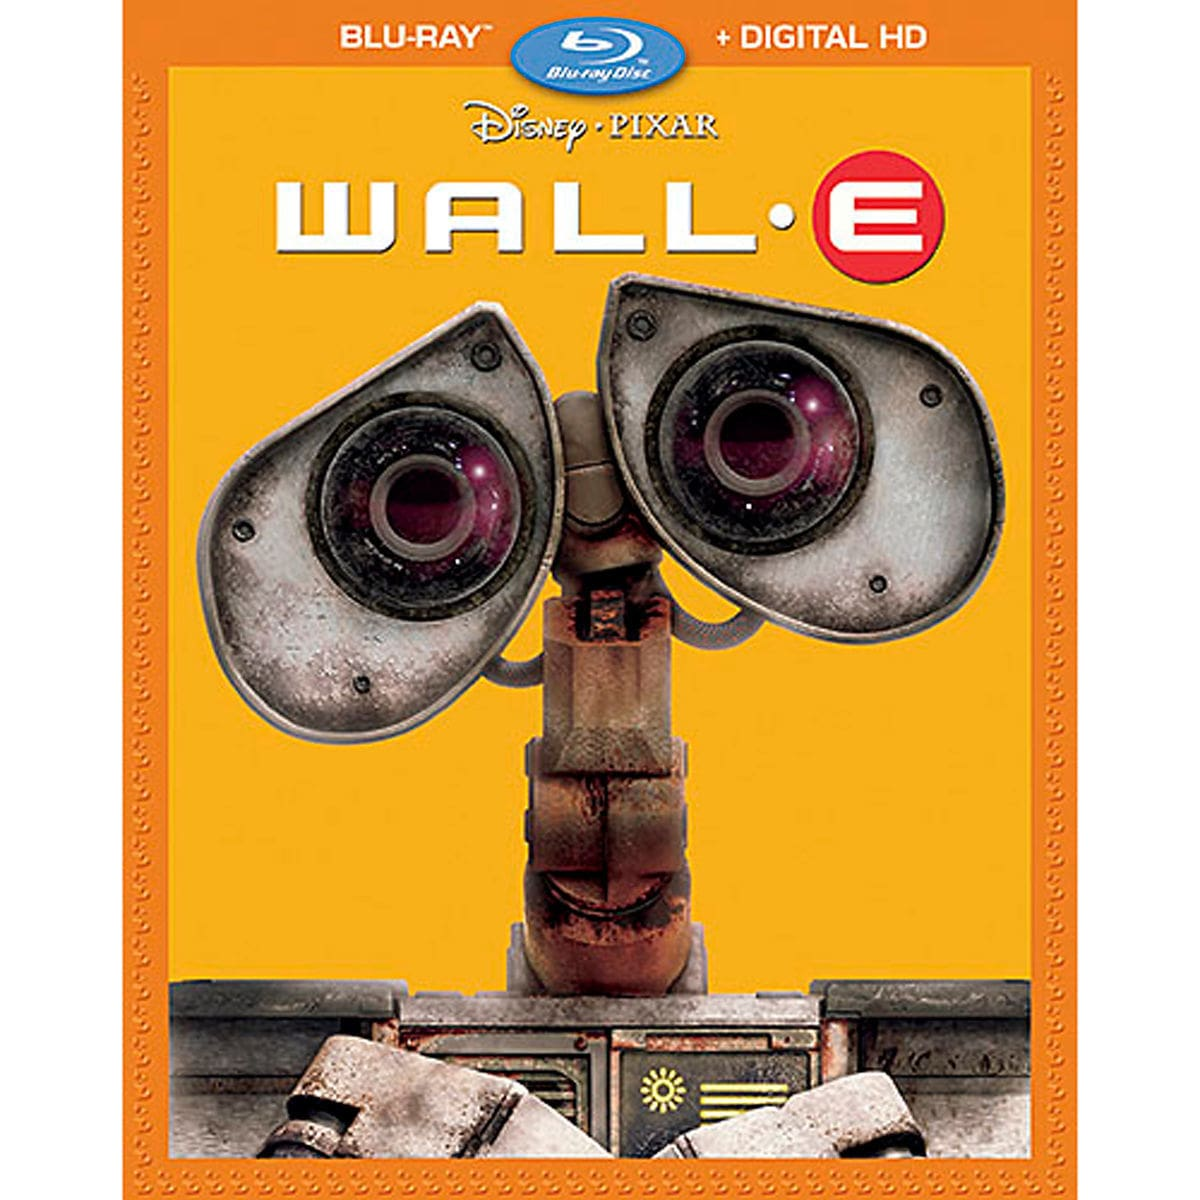 WALL•E Blu-ray | shopDisney